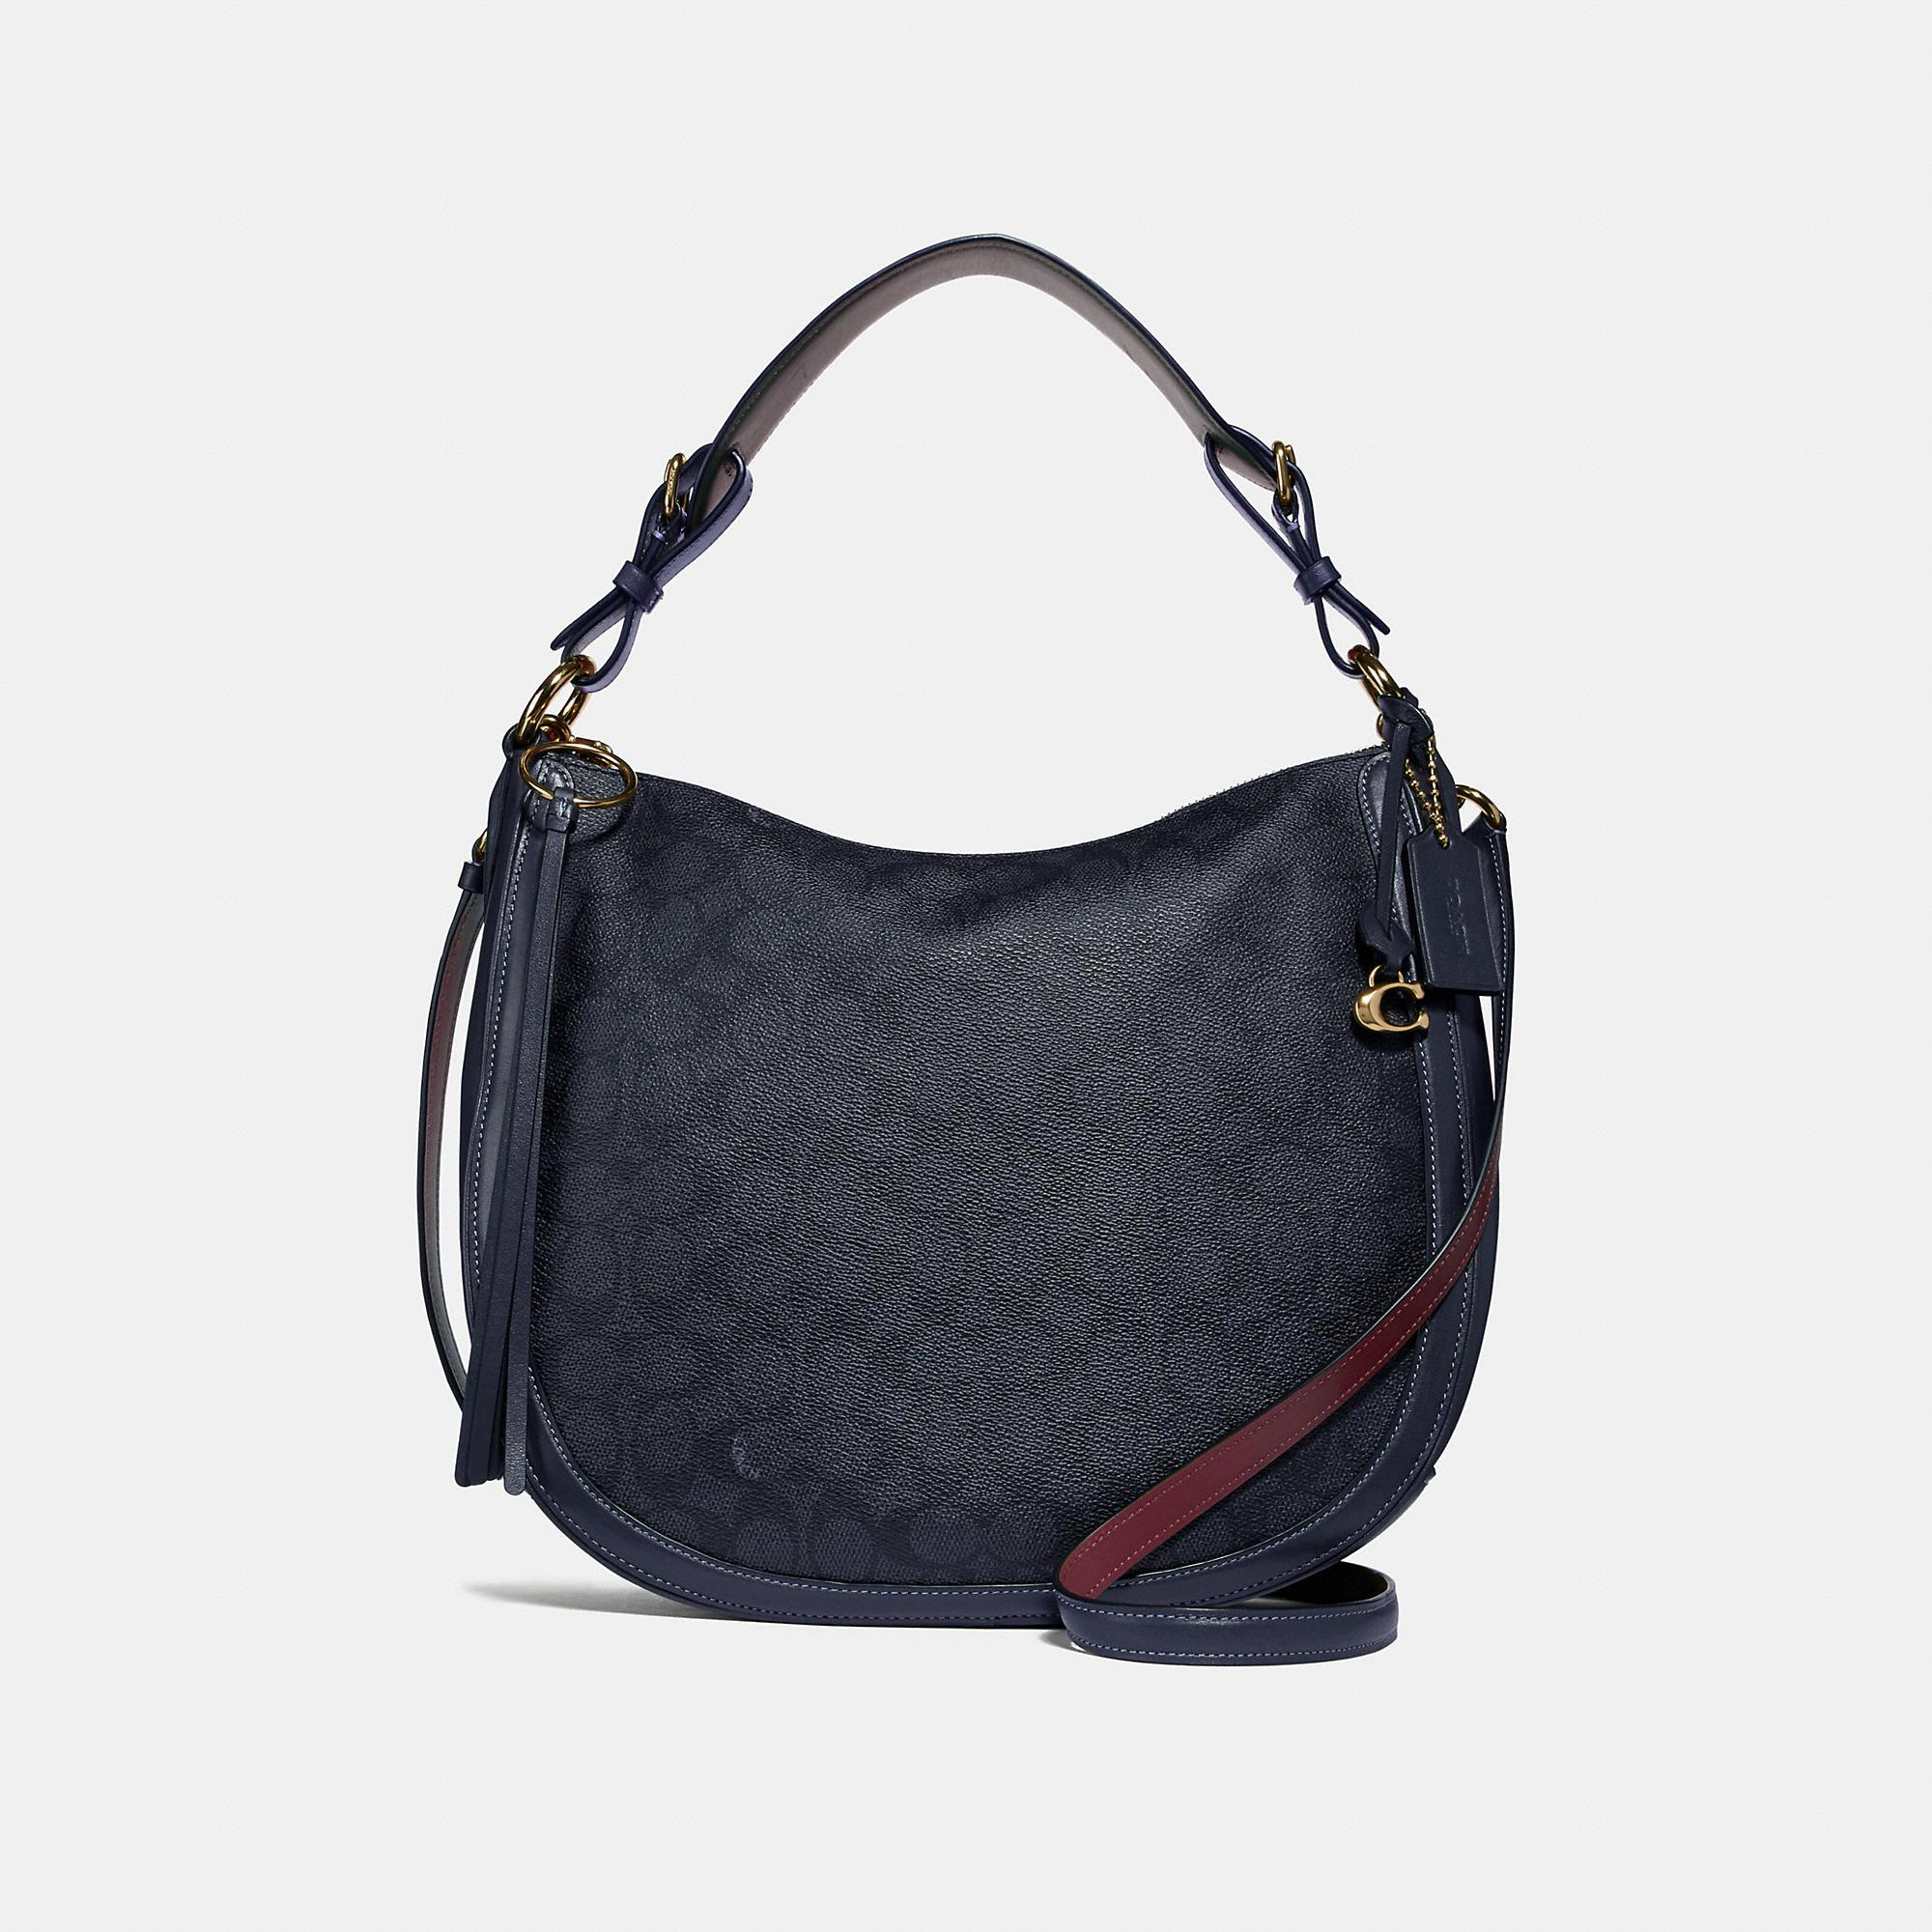 Lyst - COACH Sutton Hobo In Signature Canvas in Blue 6ee14d664a3a9